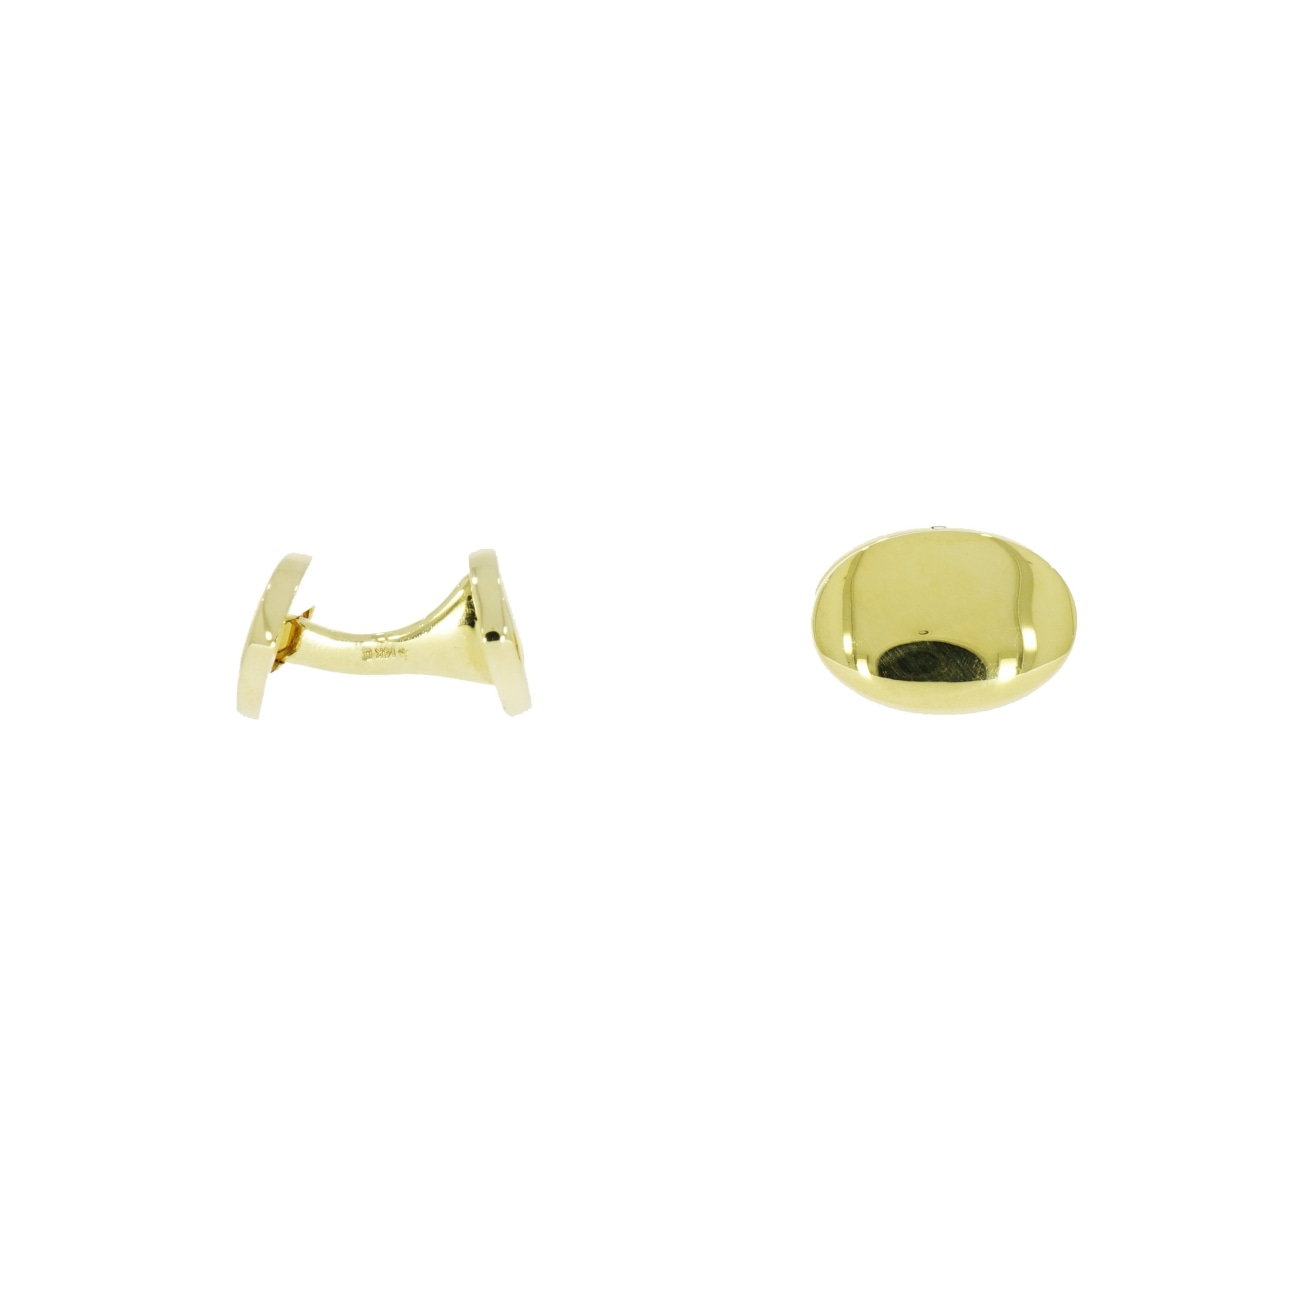 Manfredi Jewels Accessories - Solid Yellow Gold Double-Sided Oval Cufflinks | Manfredi Jewels